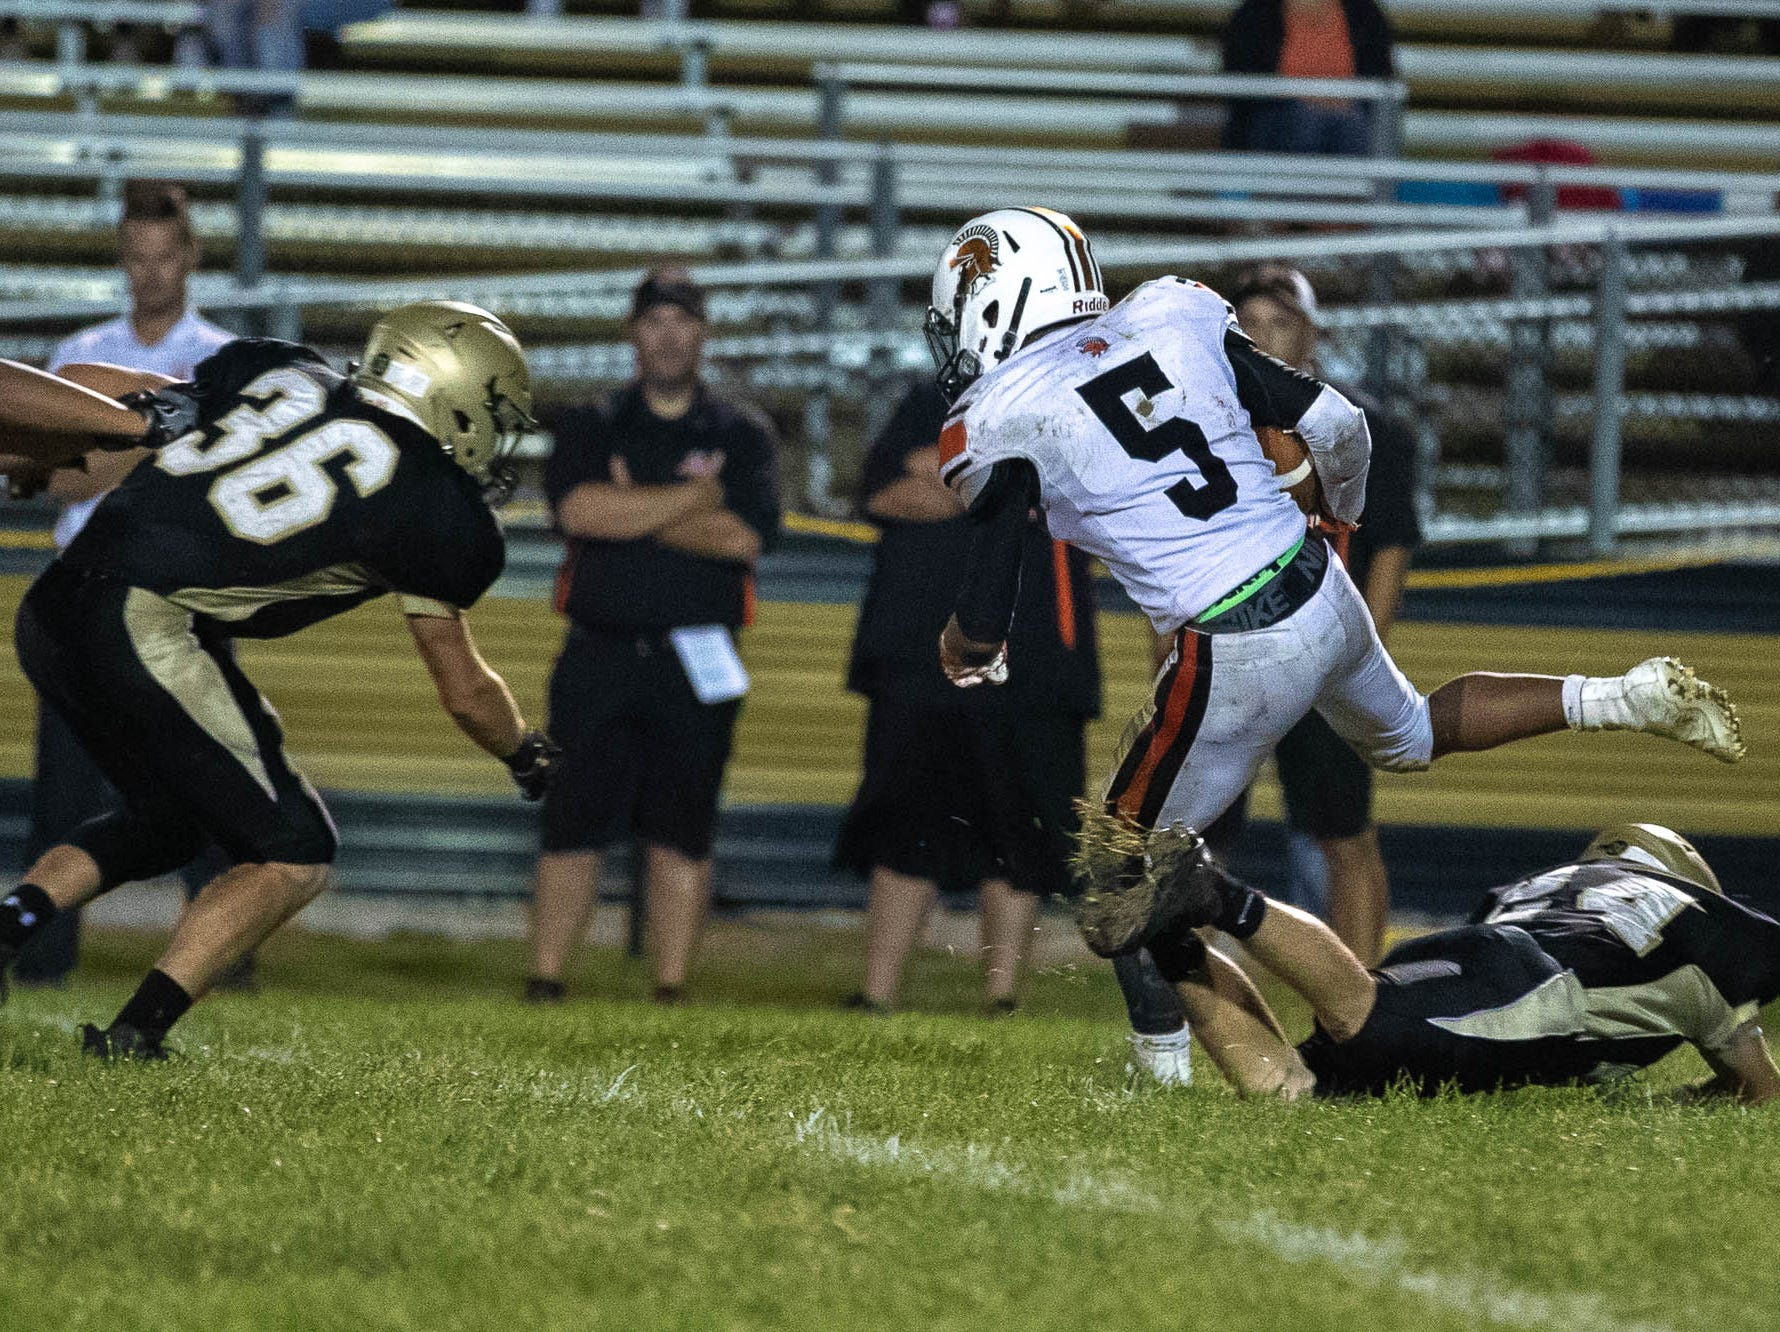 York Suburban's Donald Dent (5) dodges Delone's Tate Neiderer (24) during the second half of a football game between Delone Catholic and York Suburban, Friday, Aug. 31, 2018, at Delone Catholic High School in McSherrystown. Delone beat York Suburban 62-0.